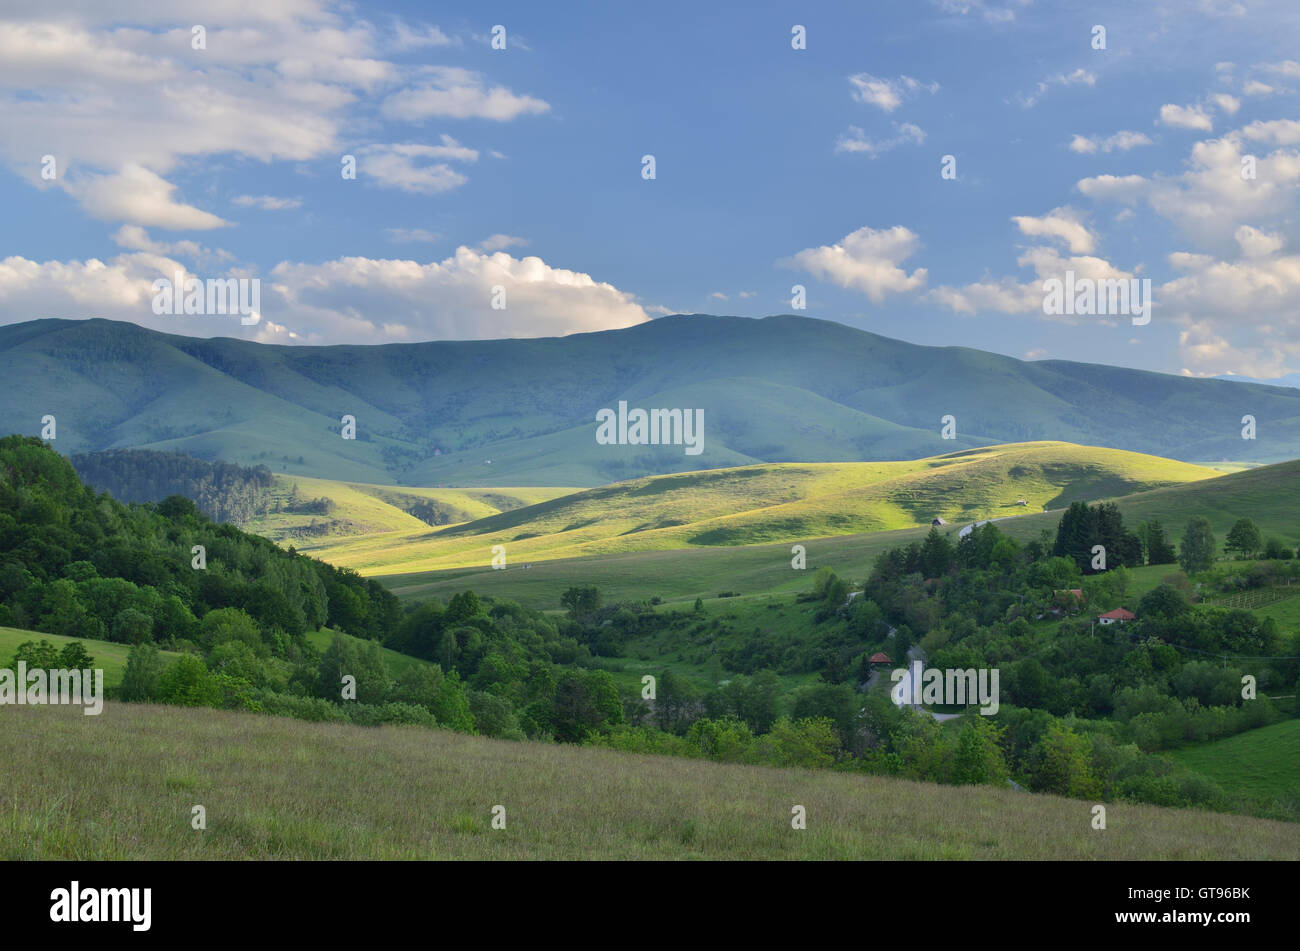 Landscape of Zlatibor Mountain. Green meadows and hills under blue sky with some clouds - Stock Image